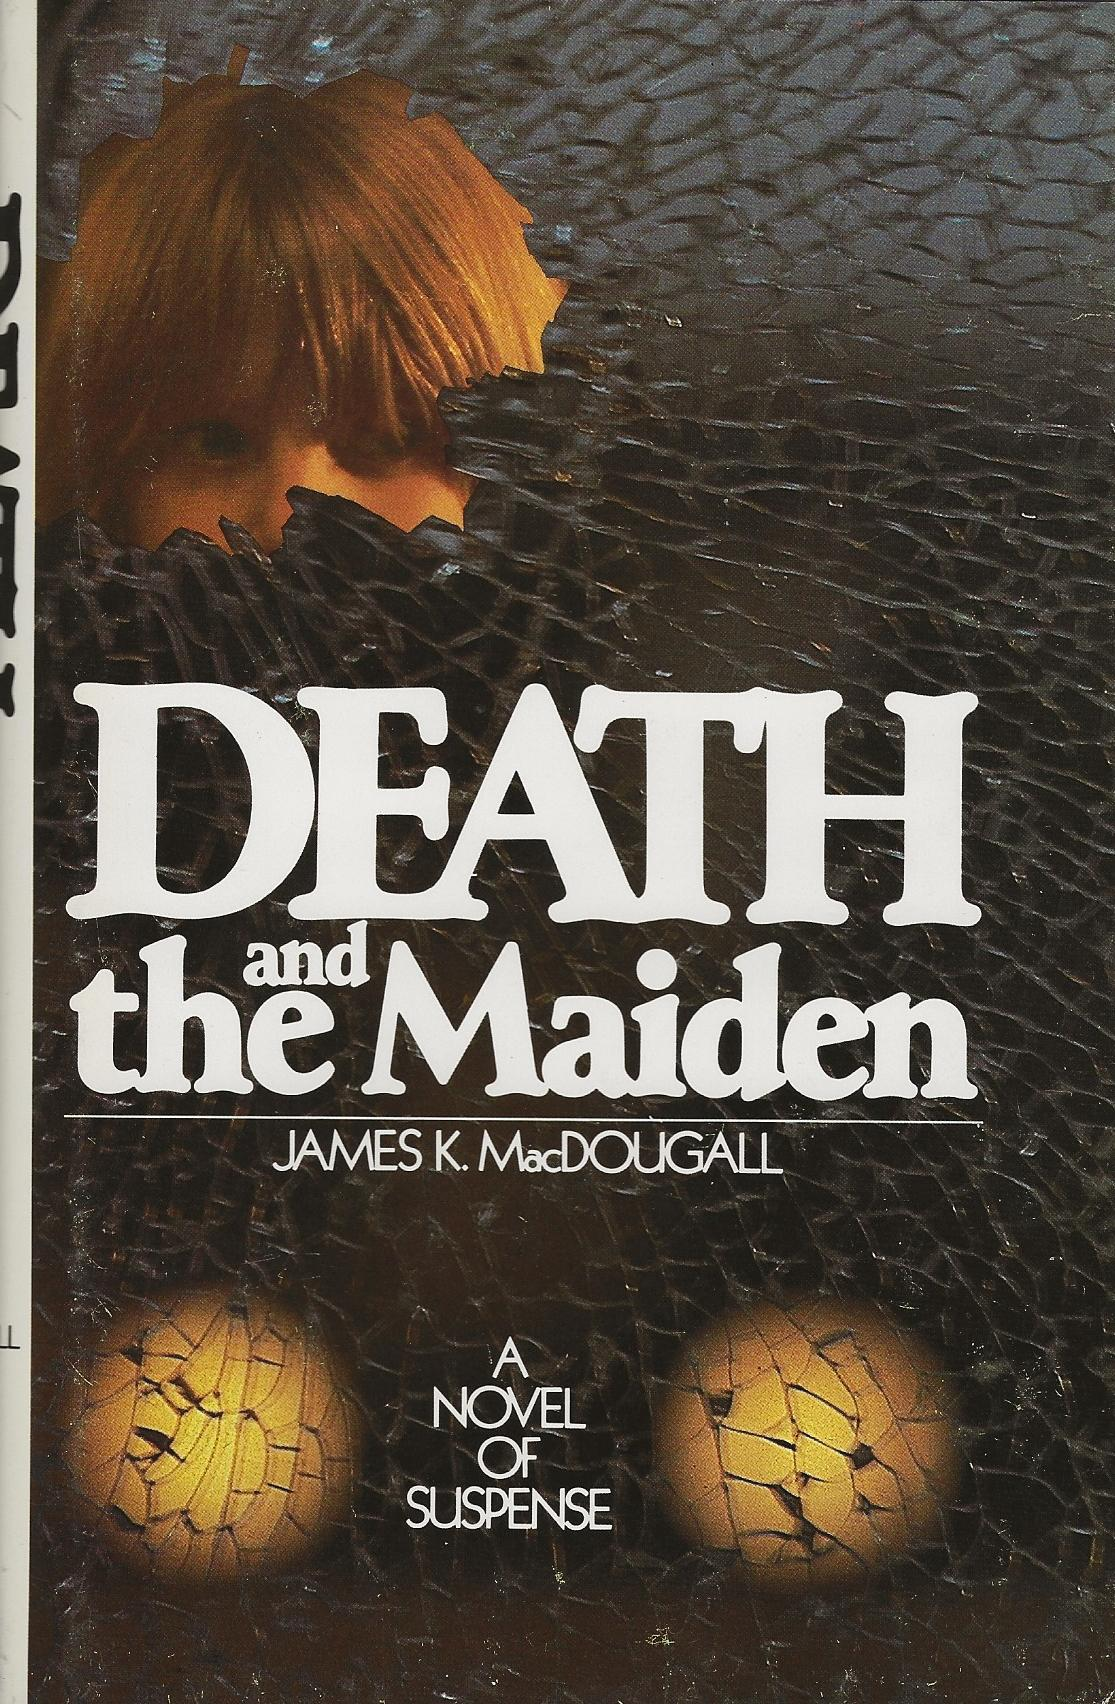 Image for DEATH AND THE MAIDEN